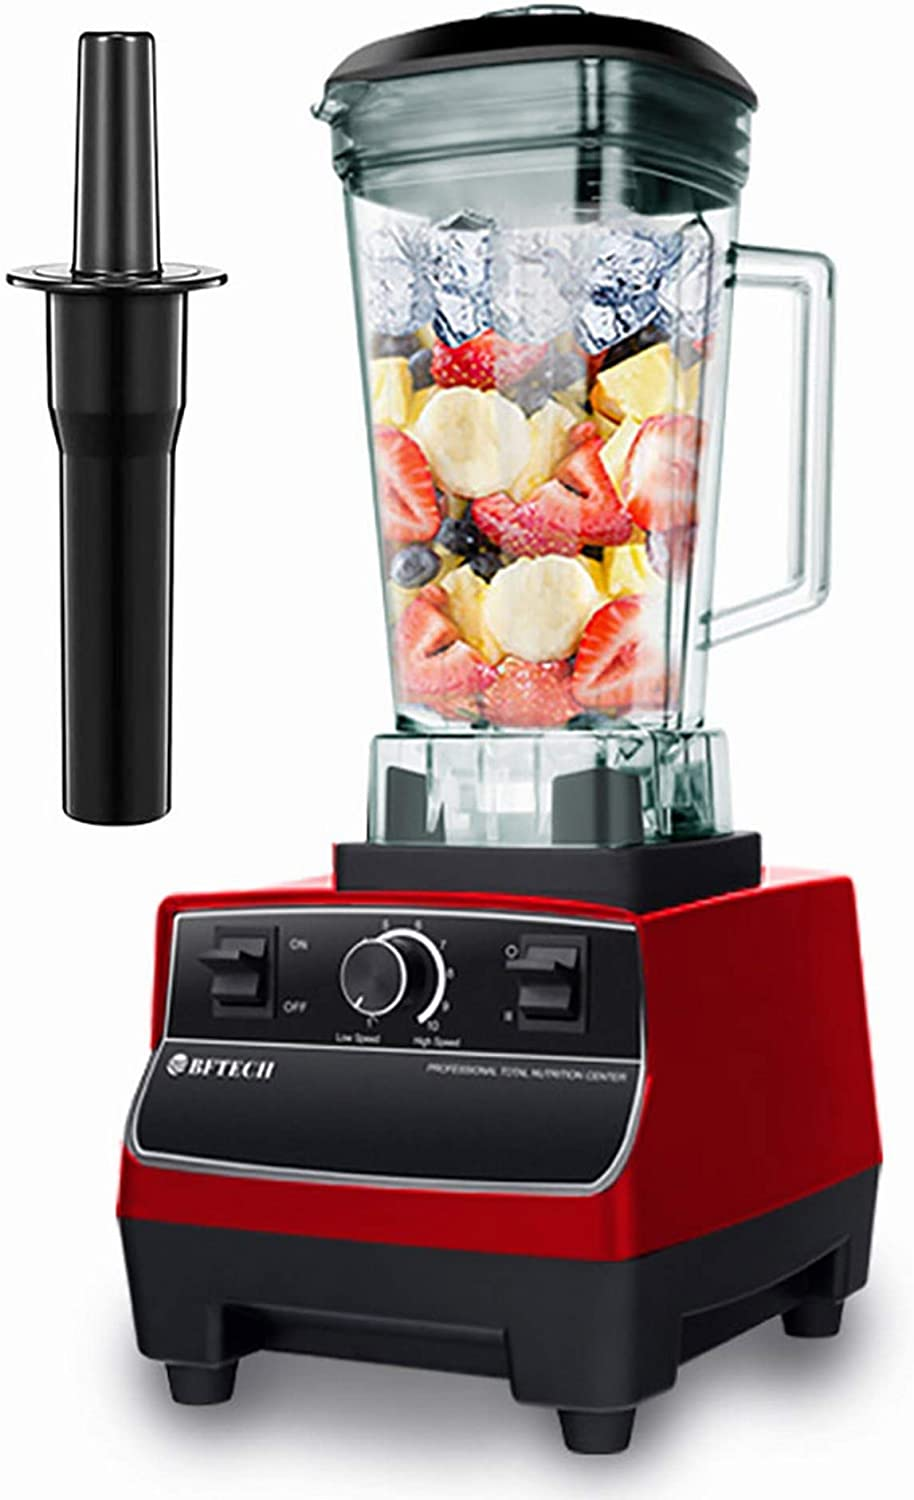 BFTECH PB2200 Explorian Blender Professional-Grade Commercial 2L 2200 Watt ,Total Crushing Technology for Smoothies, Ice and Frozen Fruit (Red)